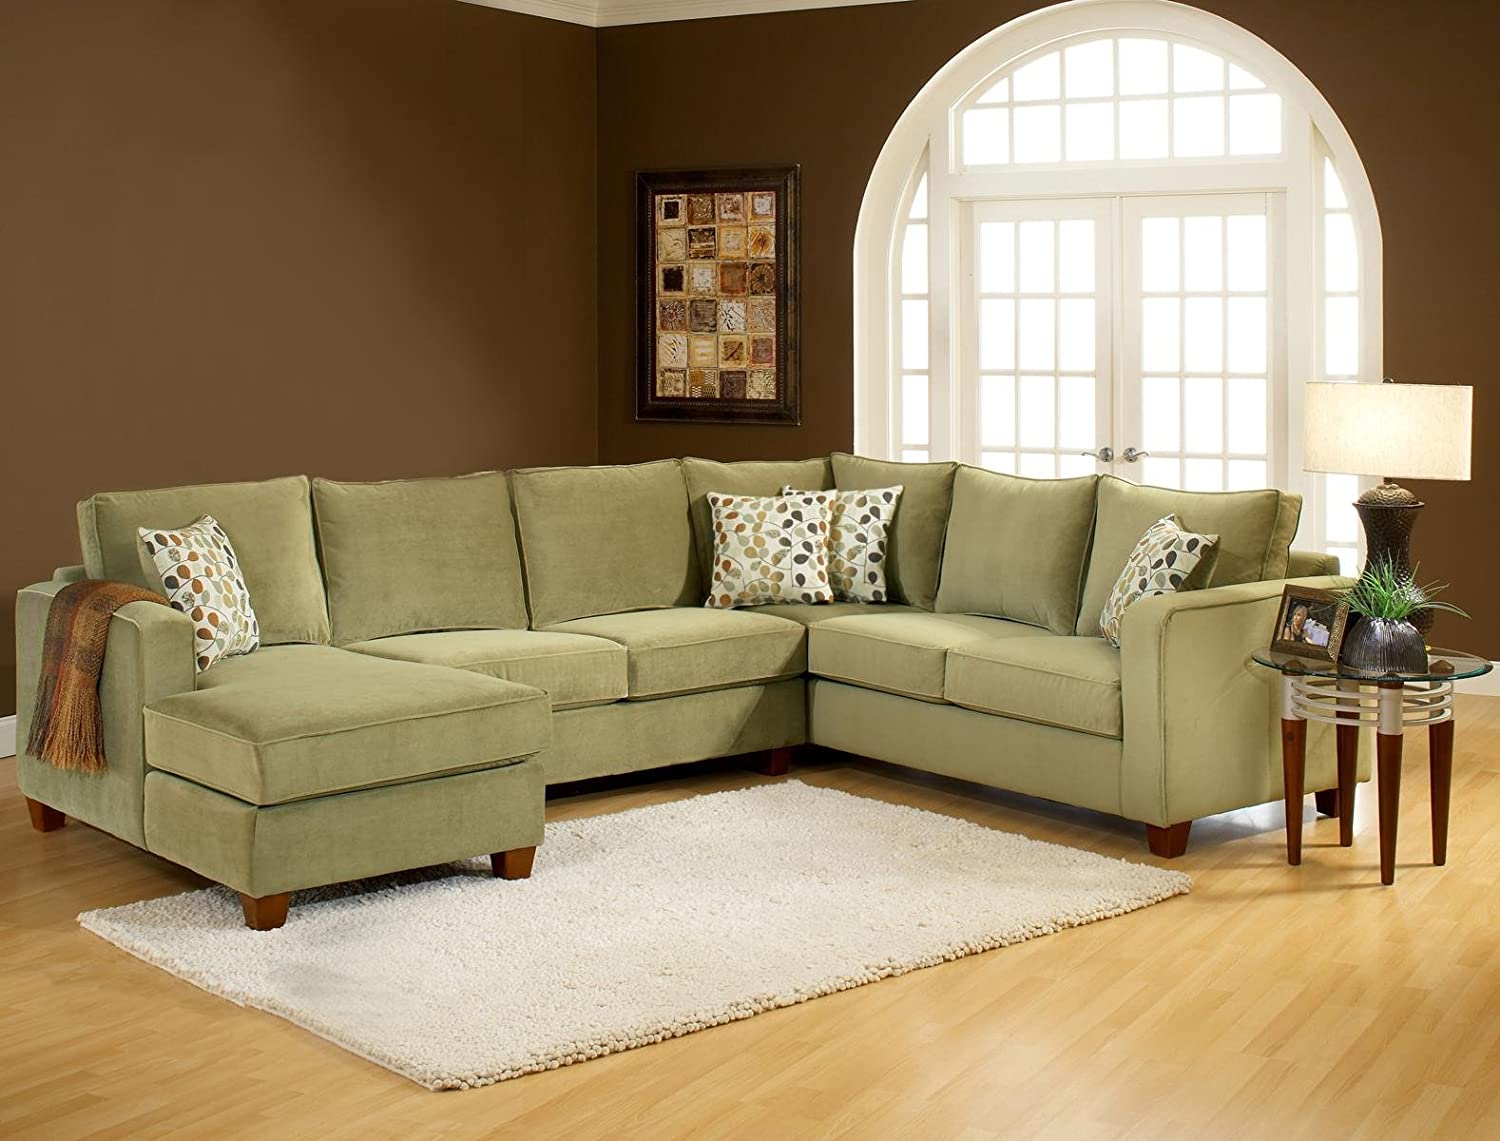 Amazon.com: Chelsea Home Furniture Bailey 3pc. Sectional, Bella Lichen:  Kitchen U0026 Dining